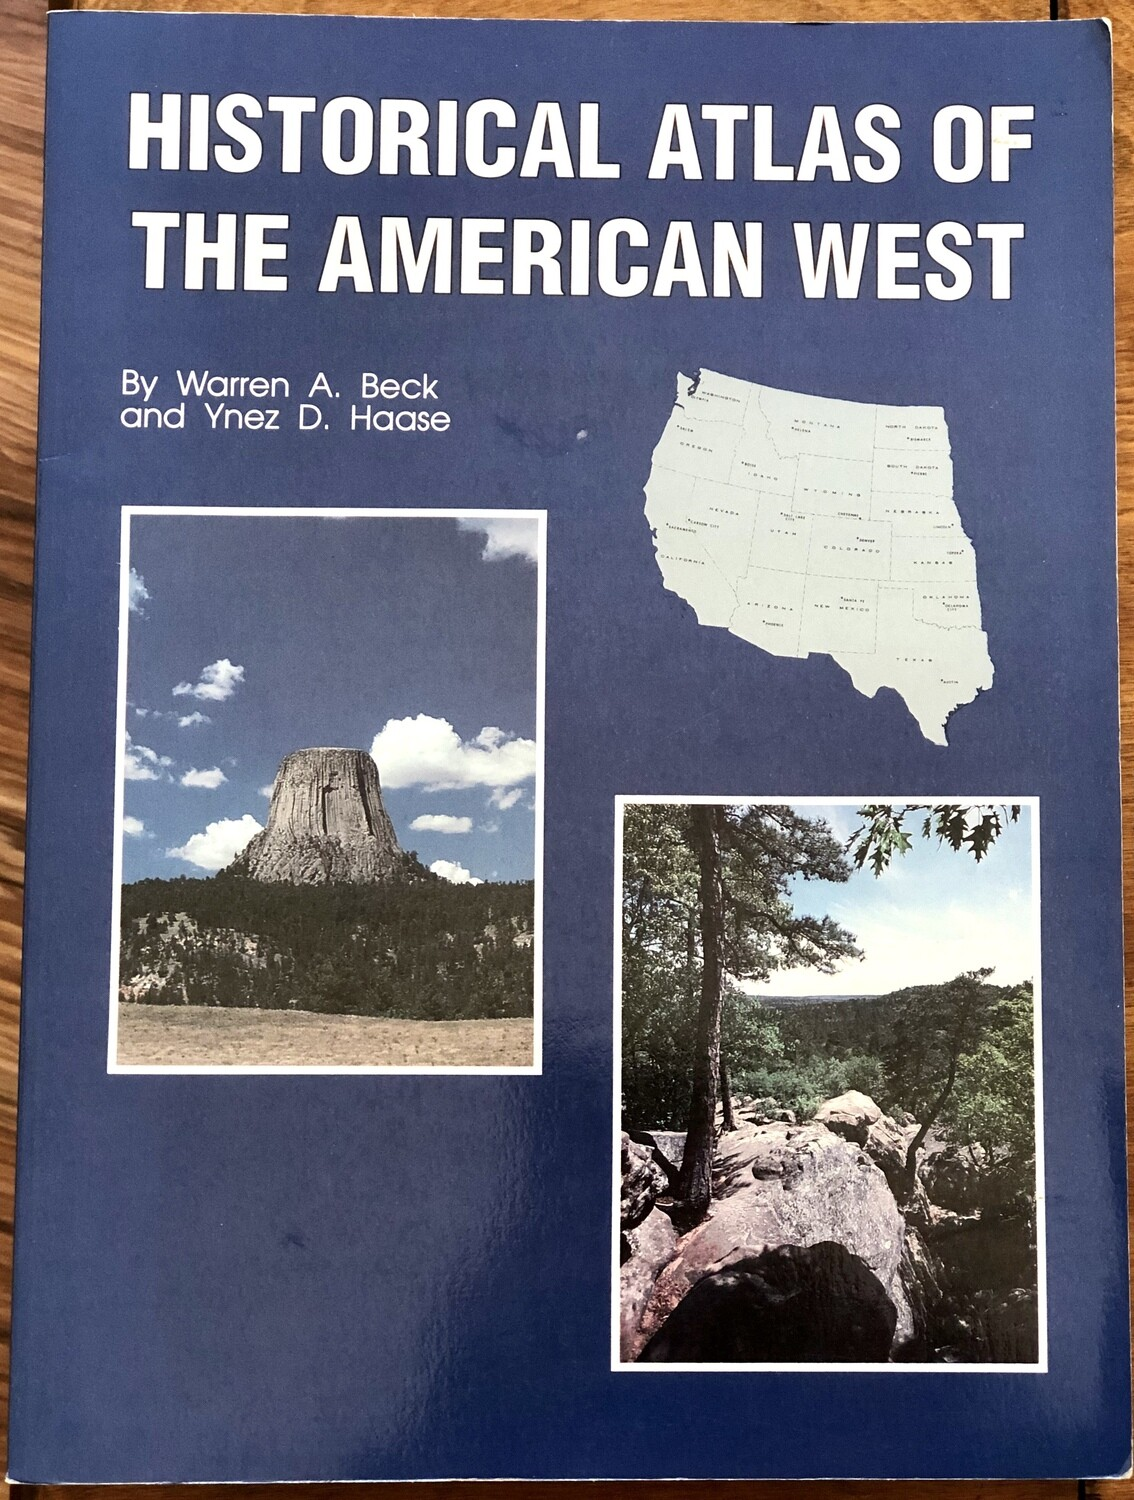 Historical Atlas of The American West by Warren A. Beck